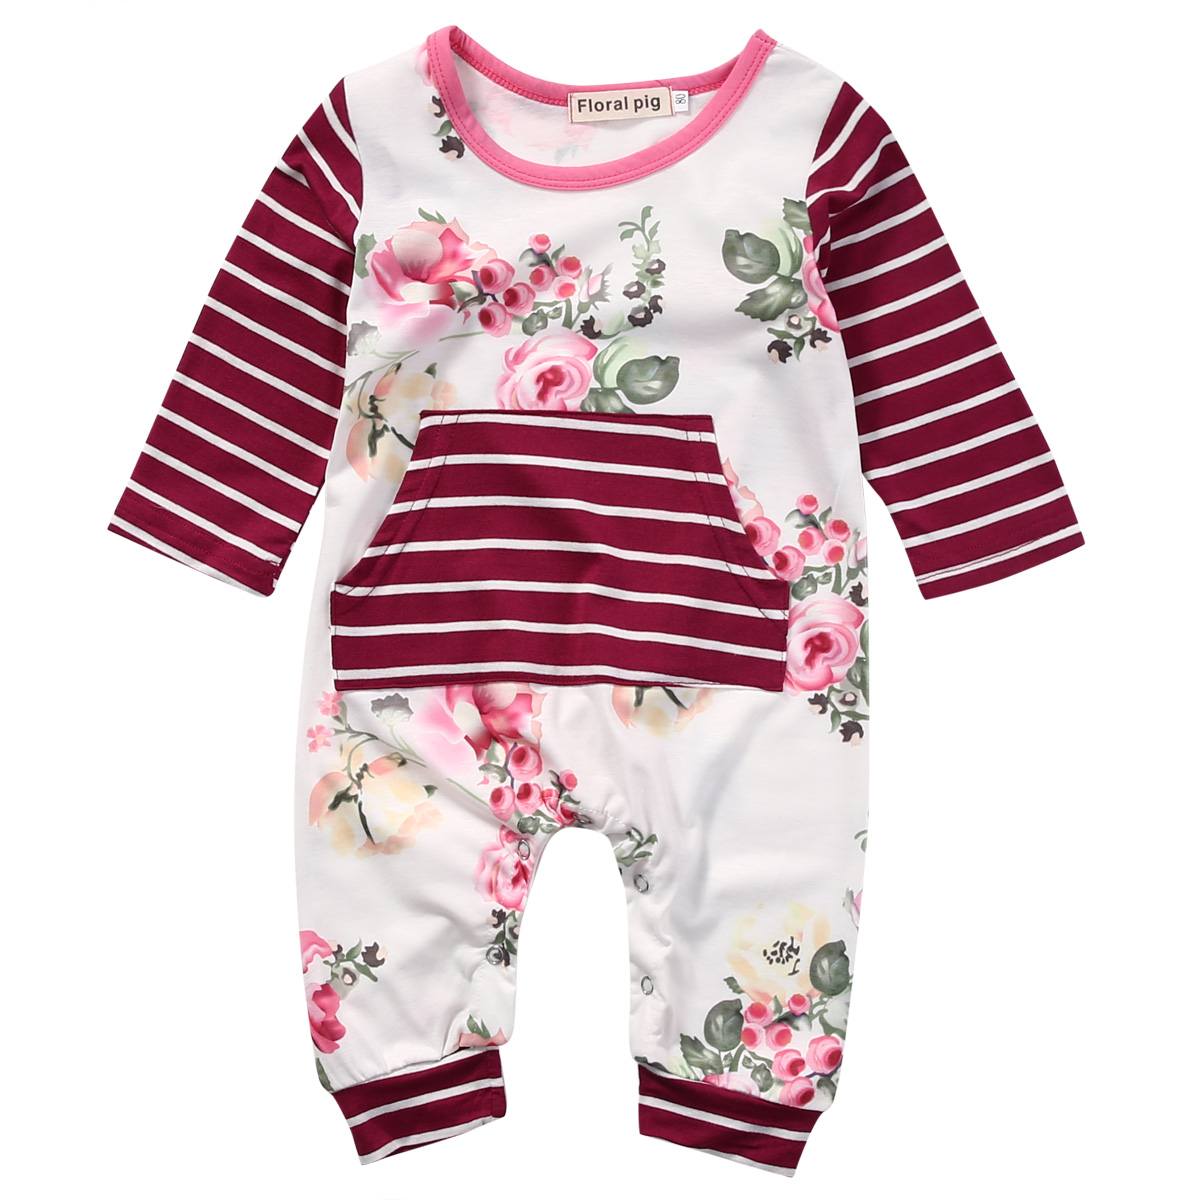 Newborn Infant Kids Baby Girls Cotton Floral Romper One-piece Jumpsuit Outfits Baby Girl Clothes Spring Winter Baby Clothes 2017 summer toddler kids girls striped baby romper off shoulder flare sleeve cotton clothes jumpsuit outfits sunsuit 0 4t